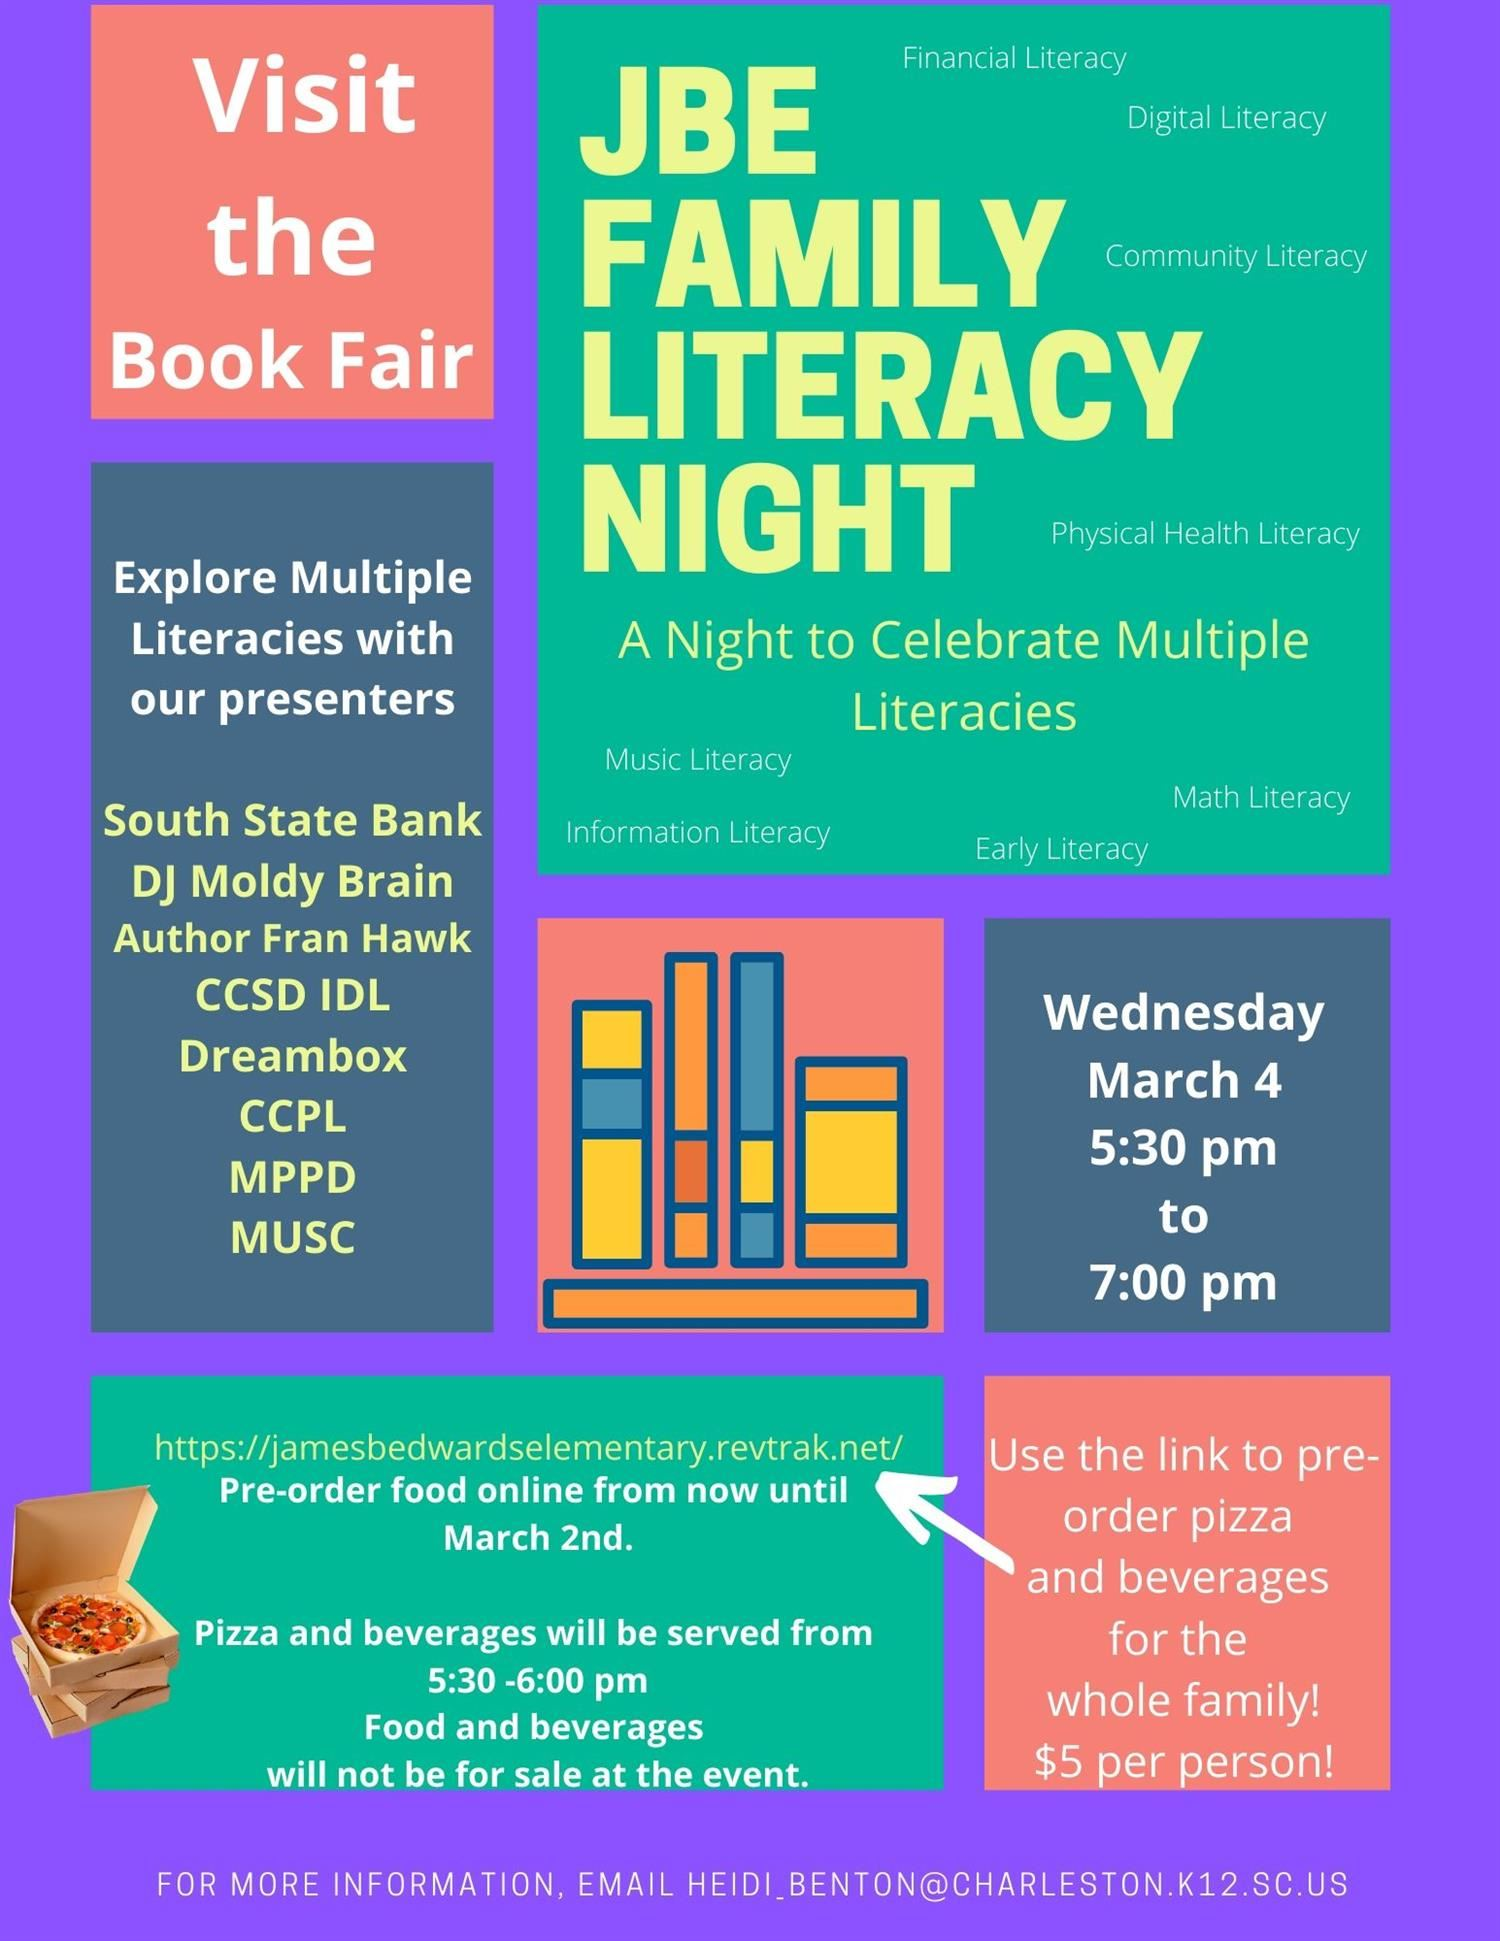 Family Literacy Night: Celebrating Multiple Literacies